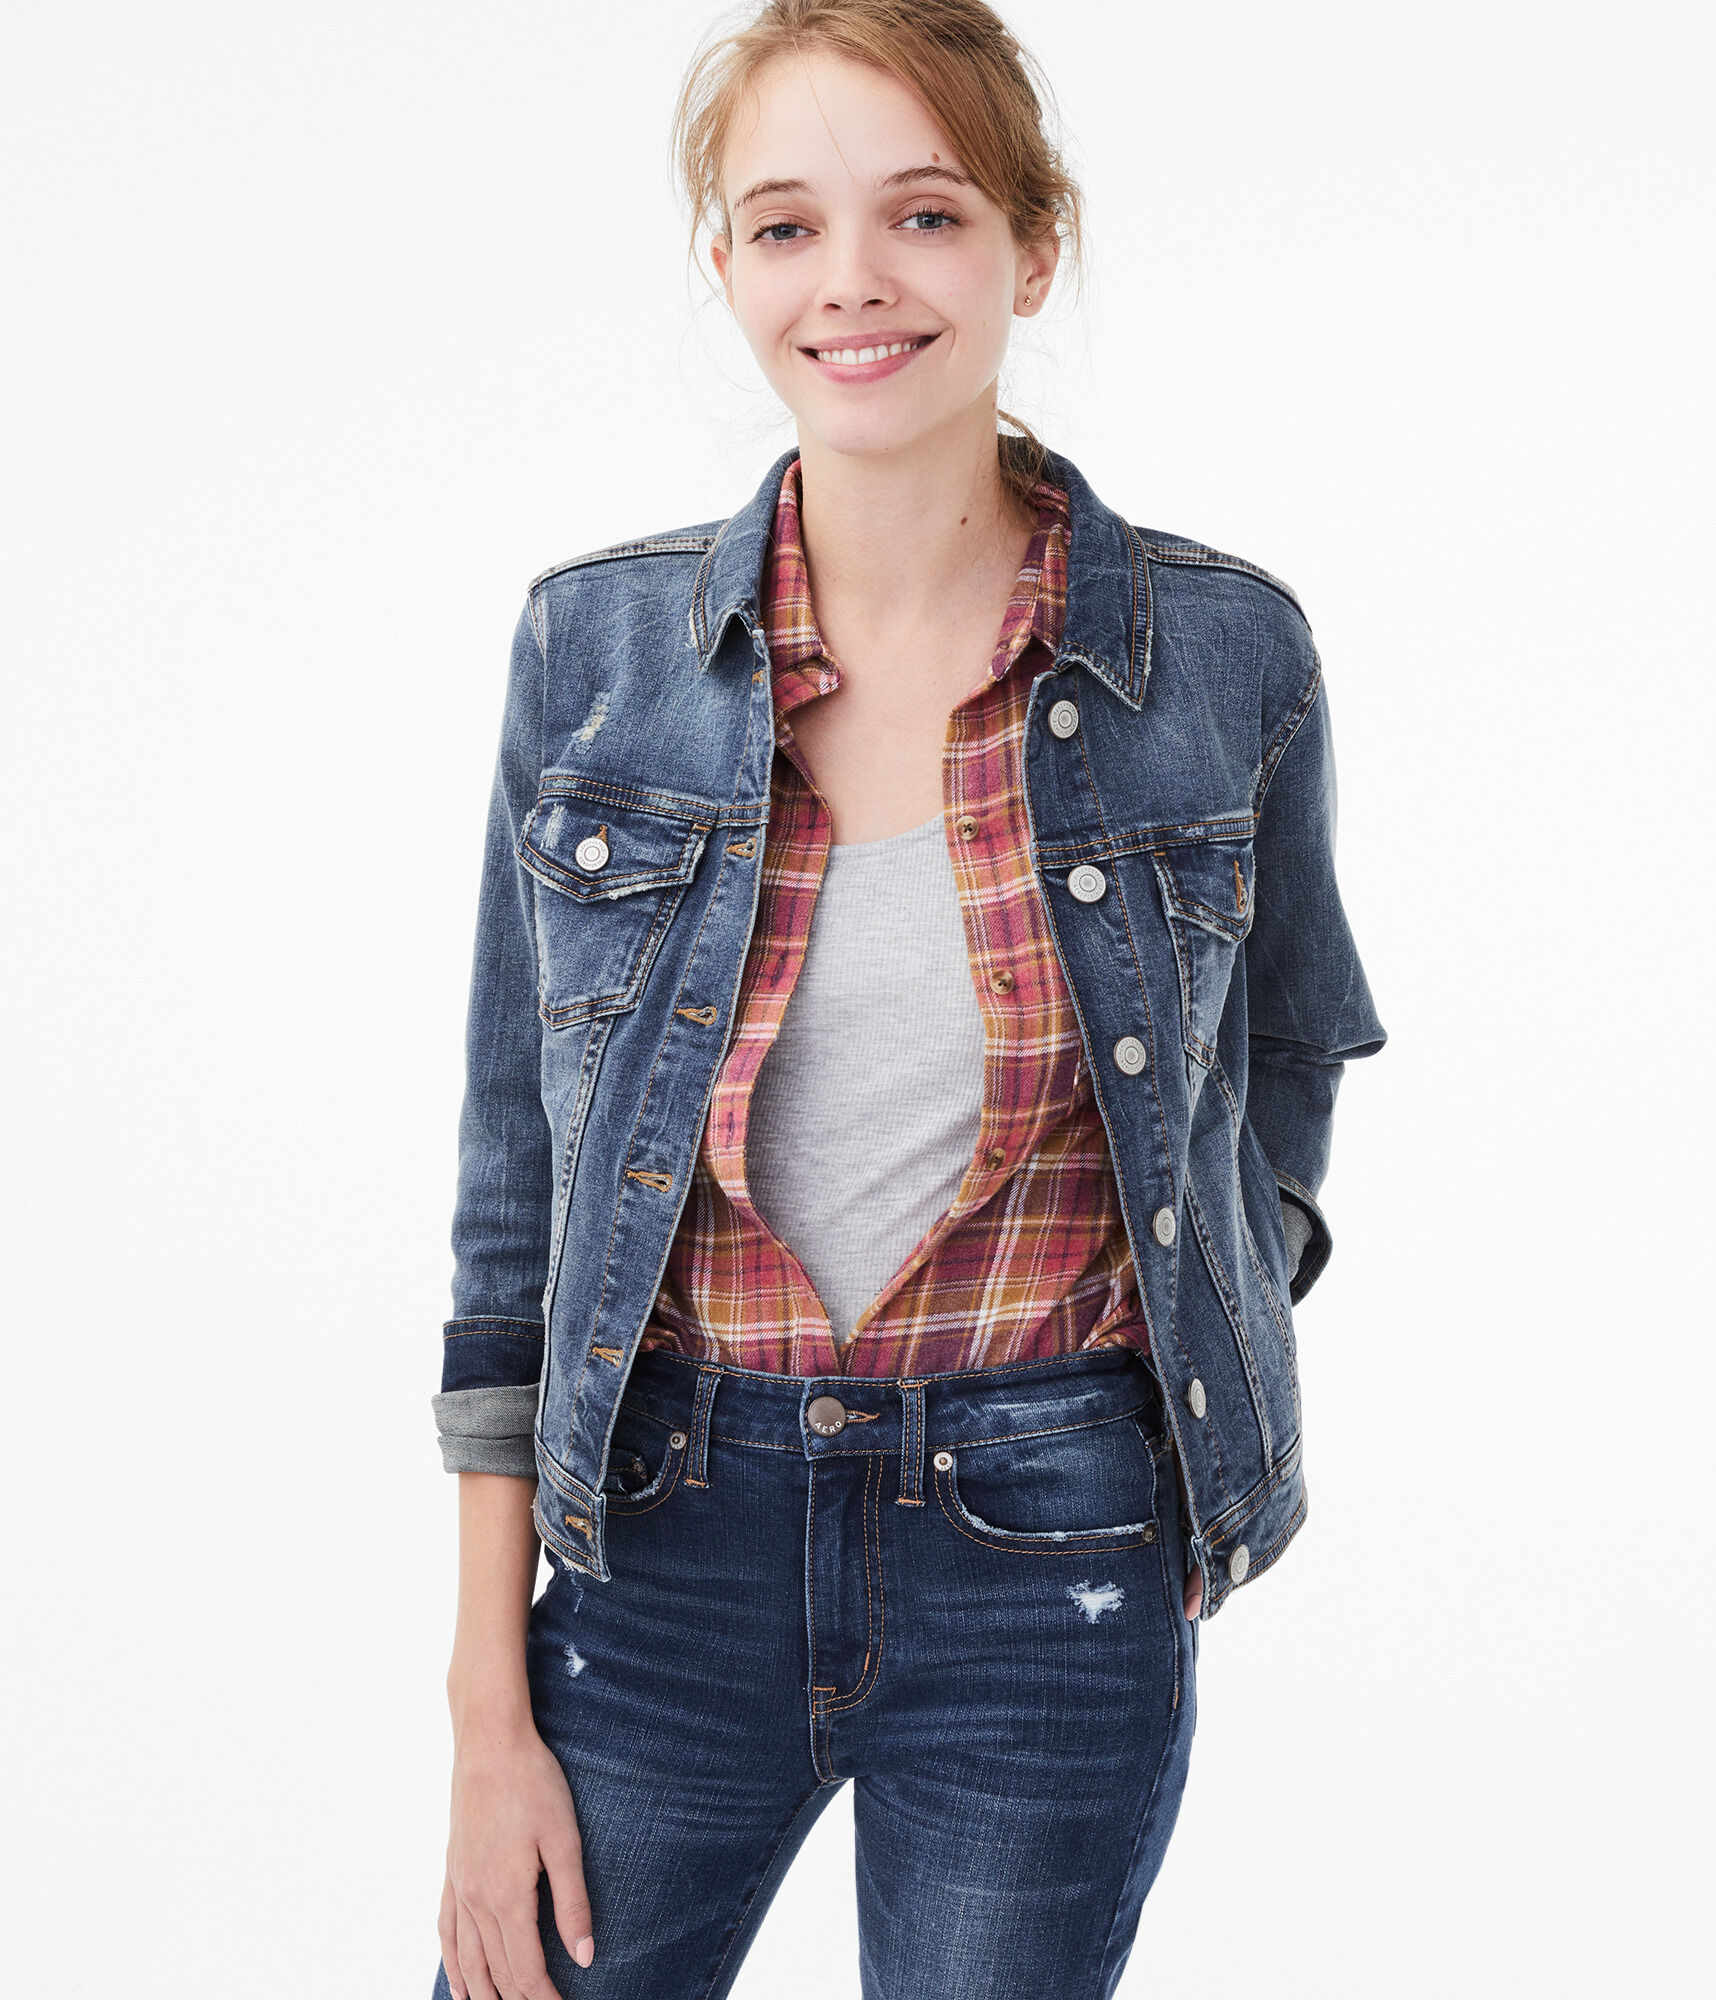 a3600ec0 Seriously Stretchy Medium Wash Denim Jacket